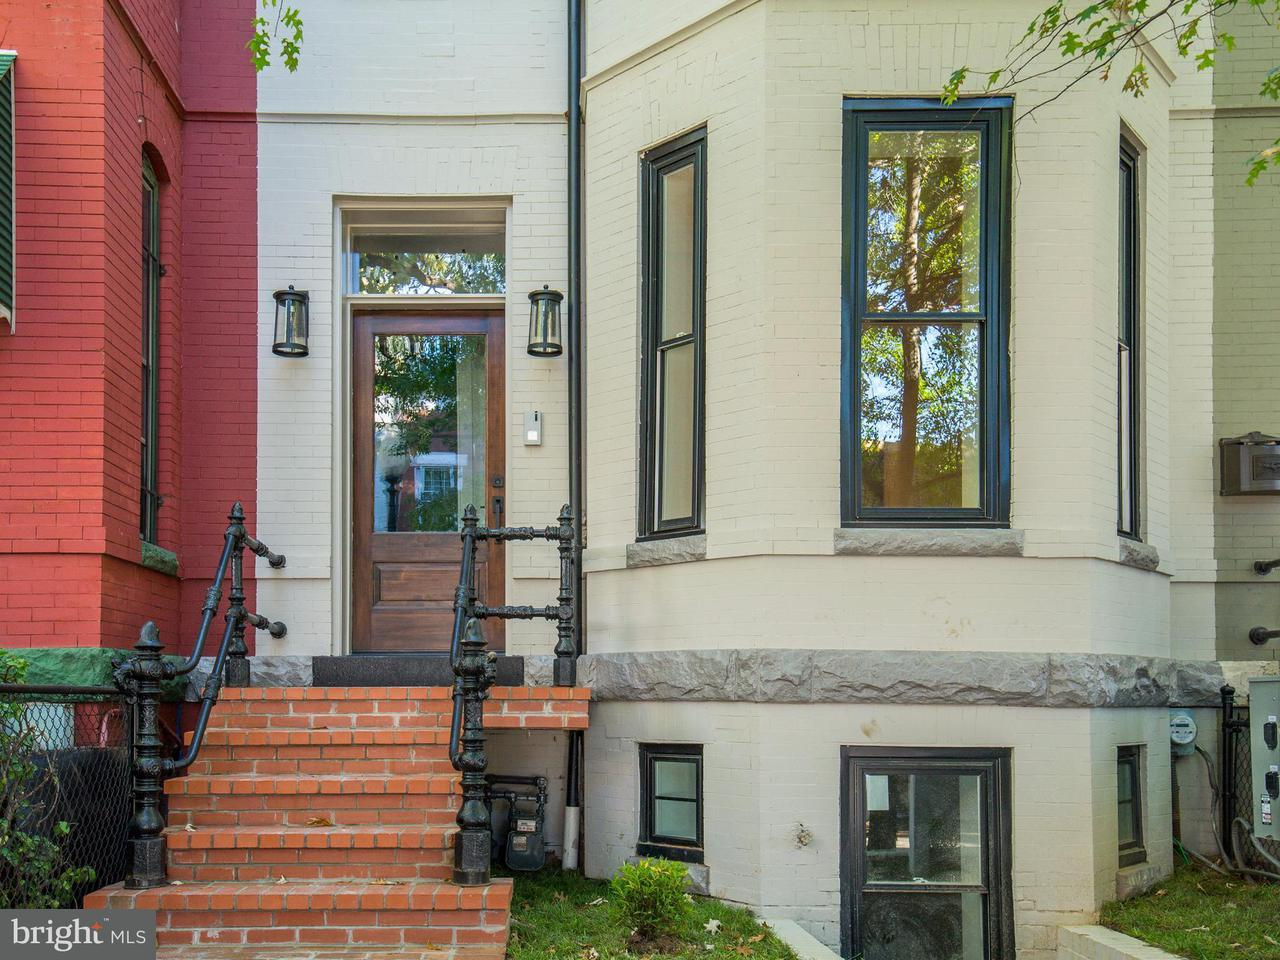 Townhouse for Sale at 51 QUINCY PL NE #2 51 QUINCY PL NE #2 Washington, District Of Columbia 20002 United States